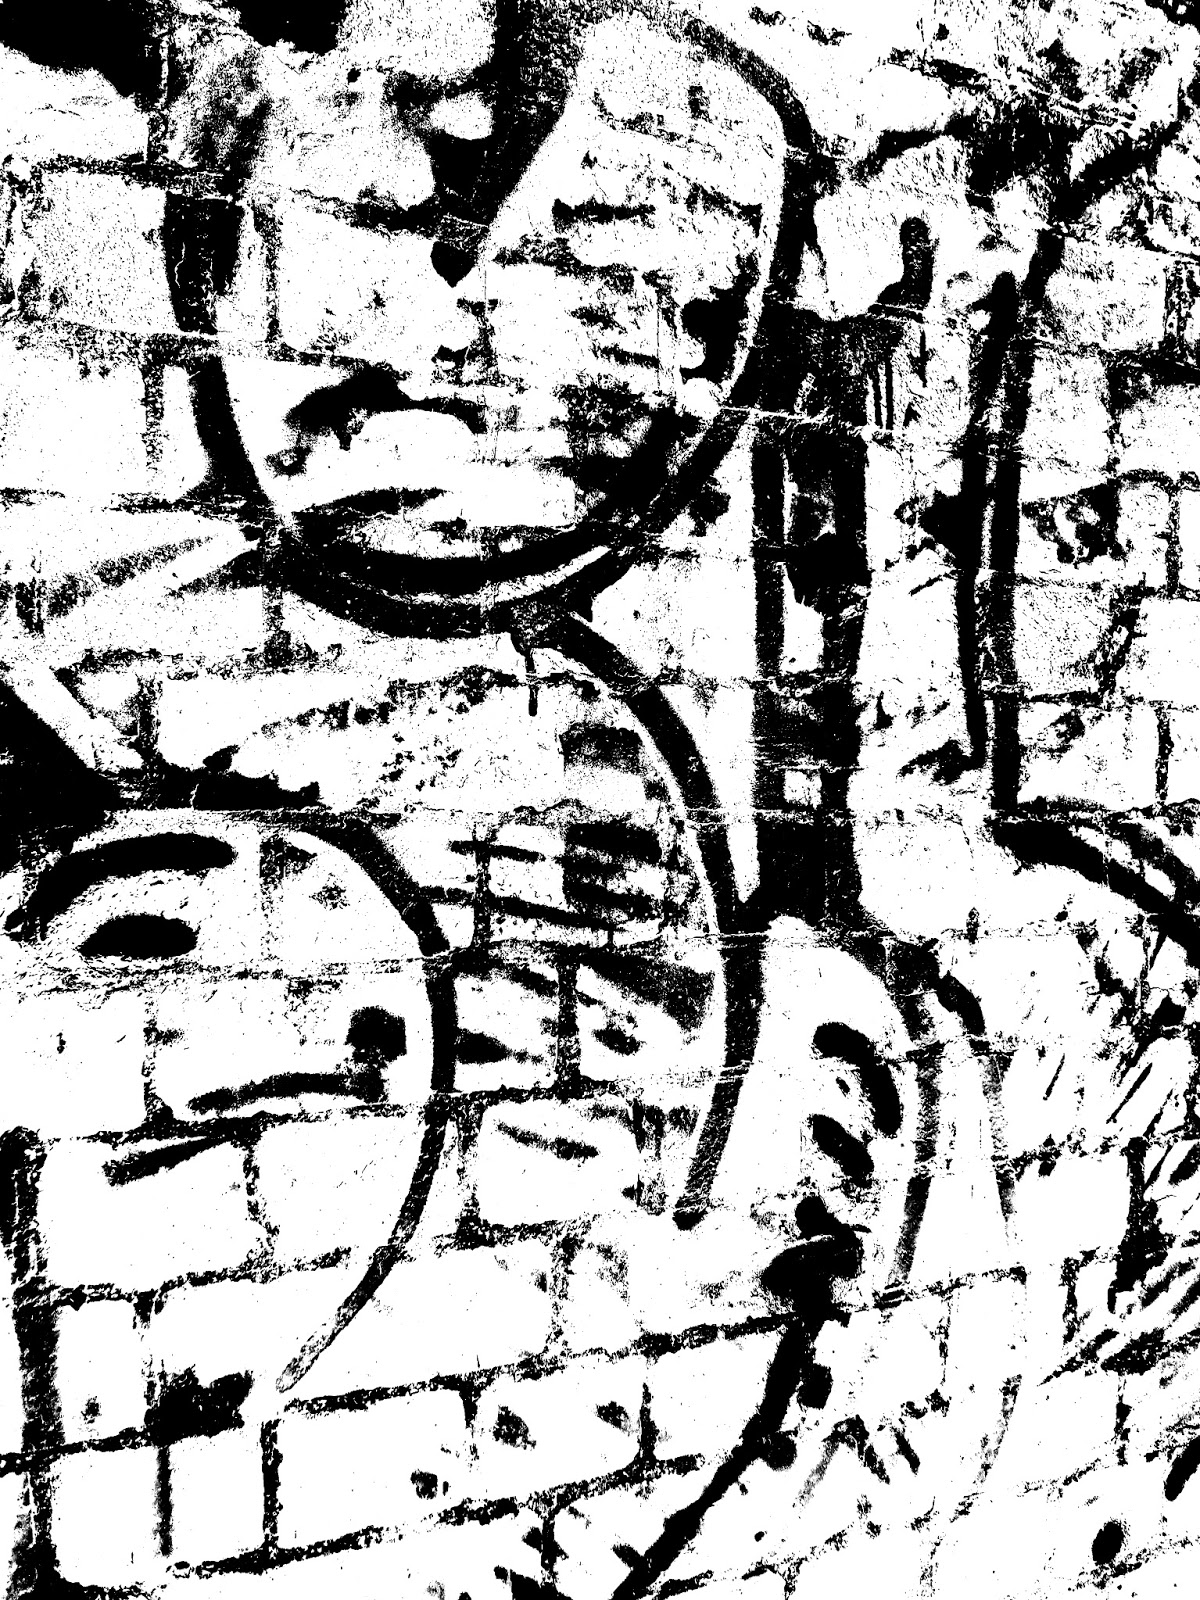 Graffiti under bridge with transposed colours in black and white